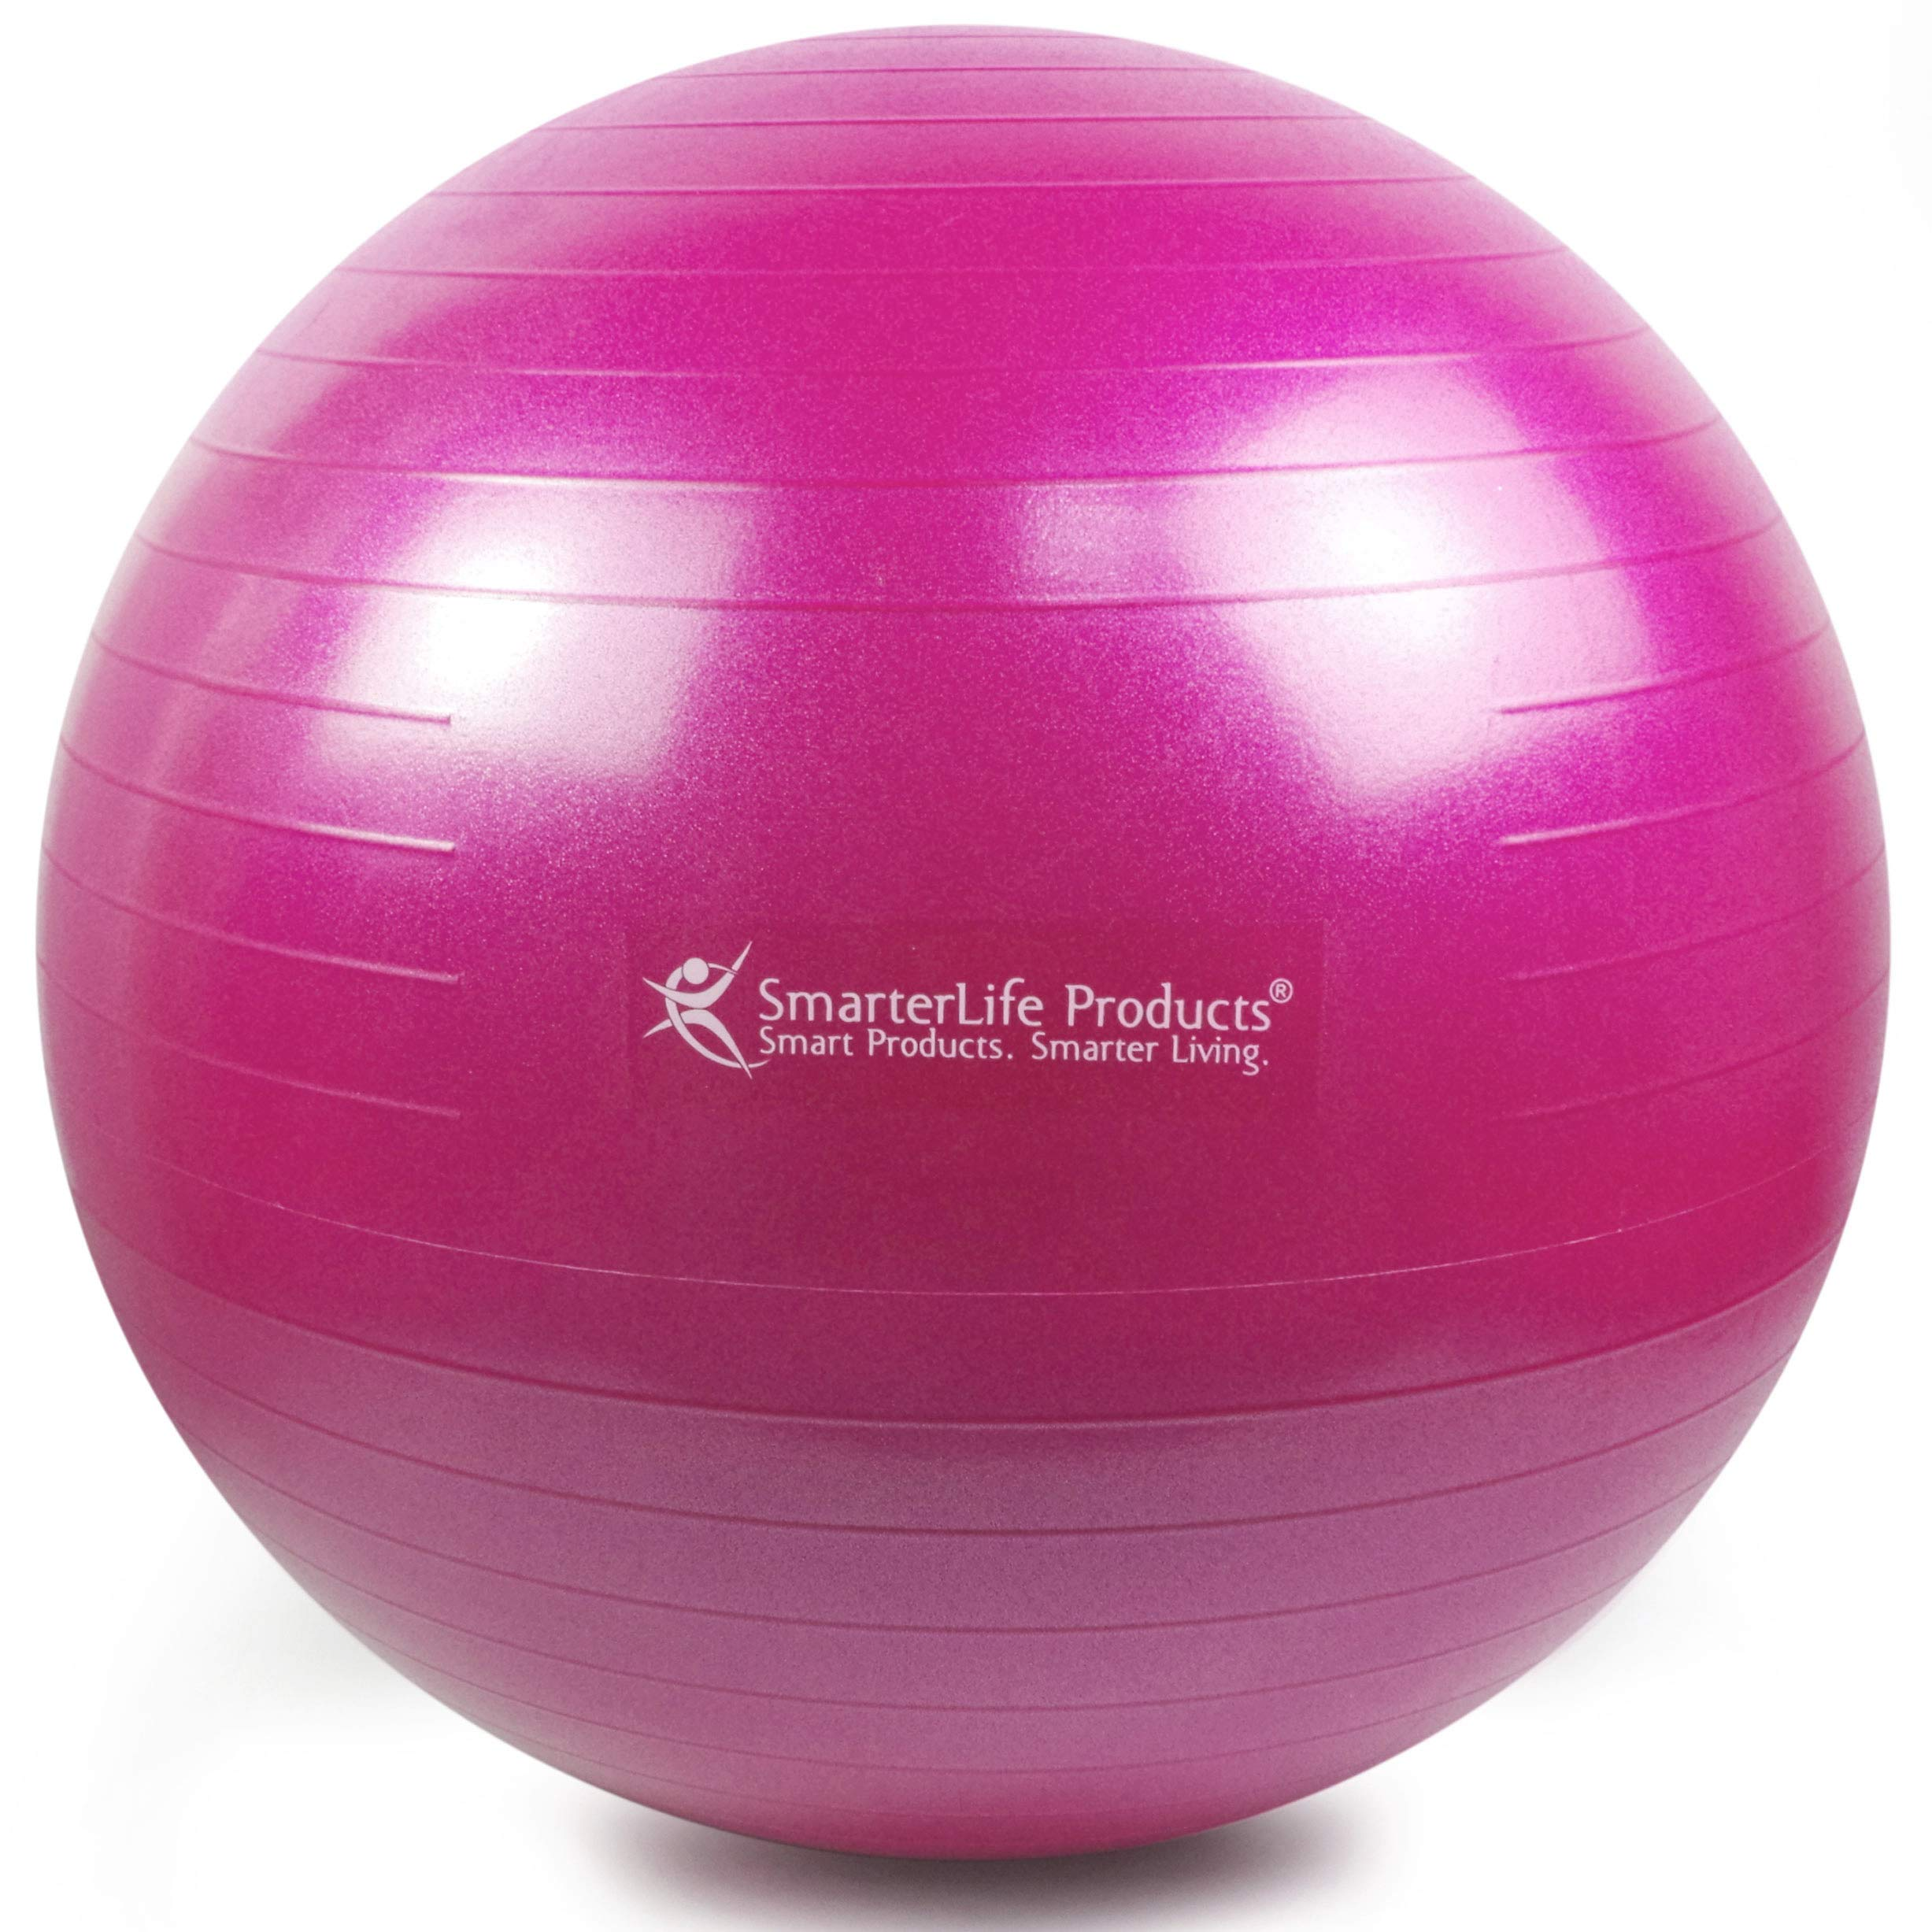 Exercise Ball for Yoga, Balance, Stability from SmarterLife - Fitness, Pilates, Birthing, Therapy, Office Ball Chair, Classroom Flexible Seating - Anti Burst, Non Slip + Workout Guide (Fuchsia, 45 cm) by SmarterLife Products (Image #2)